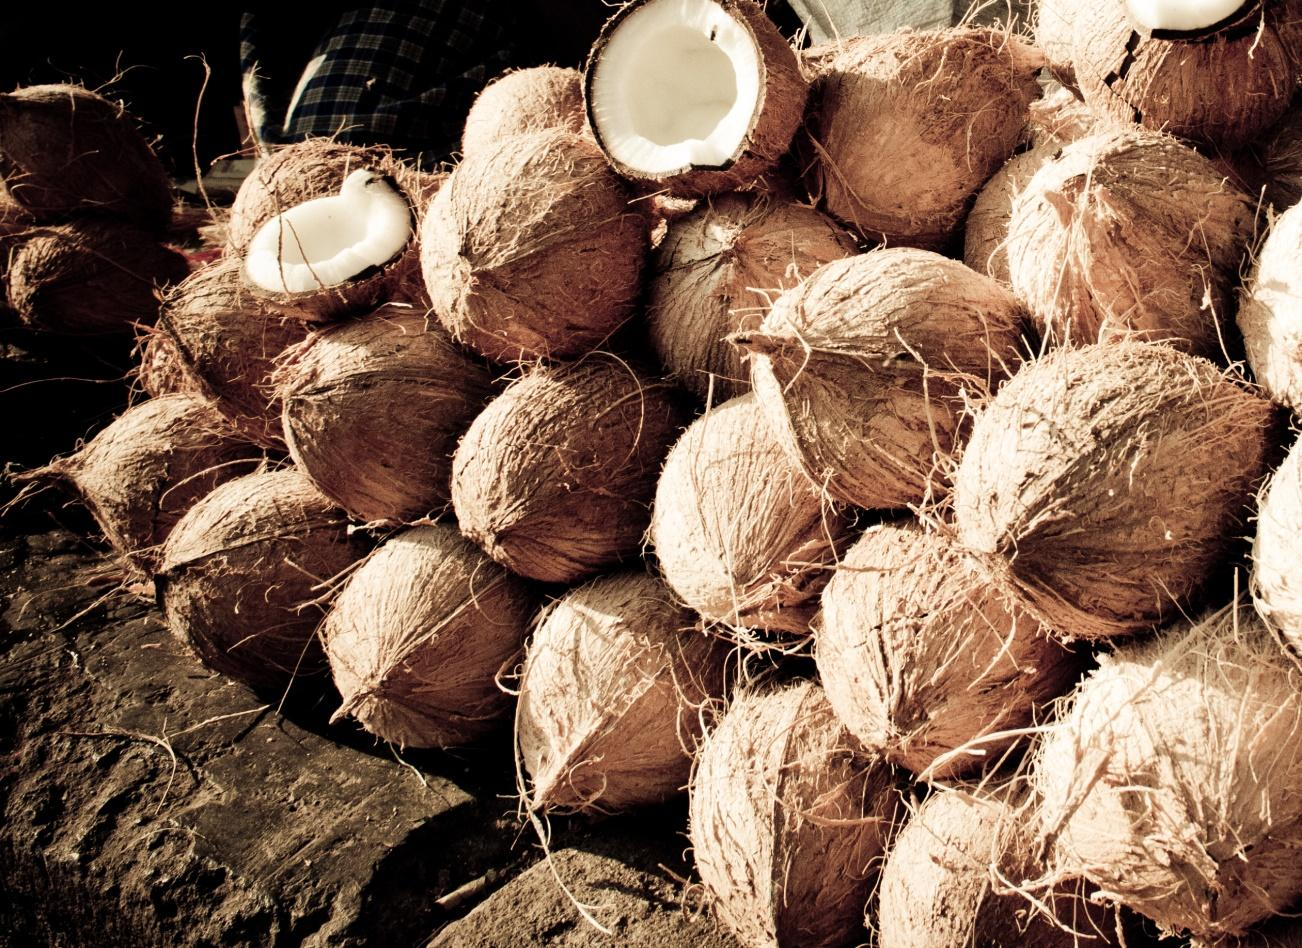 Indian Culture, Indian Culture 101, Offer Coconut, Coconut, Coconut In Temples